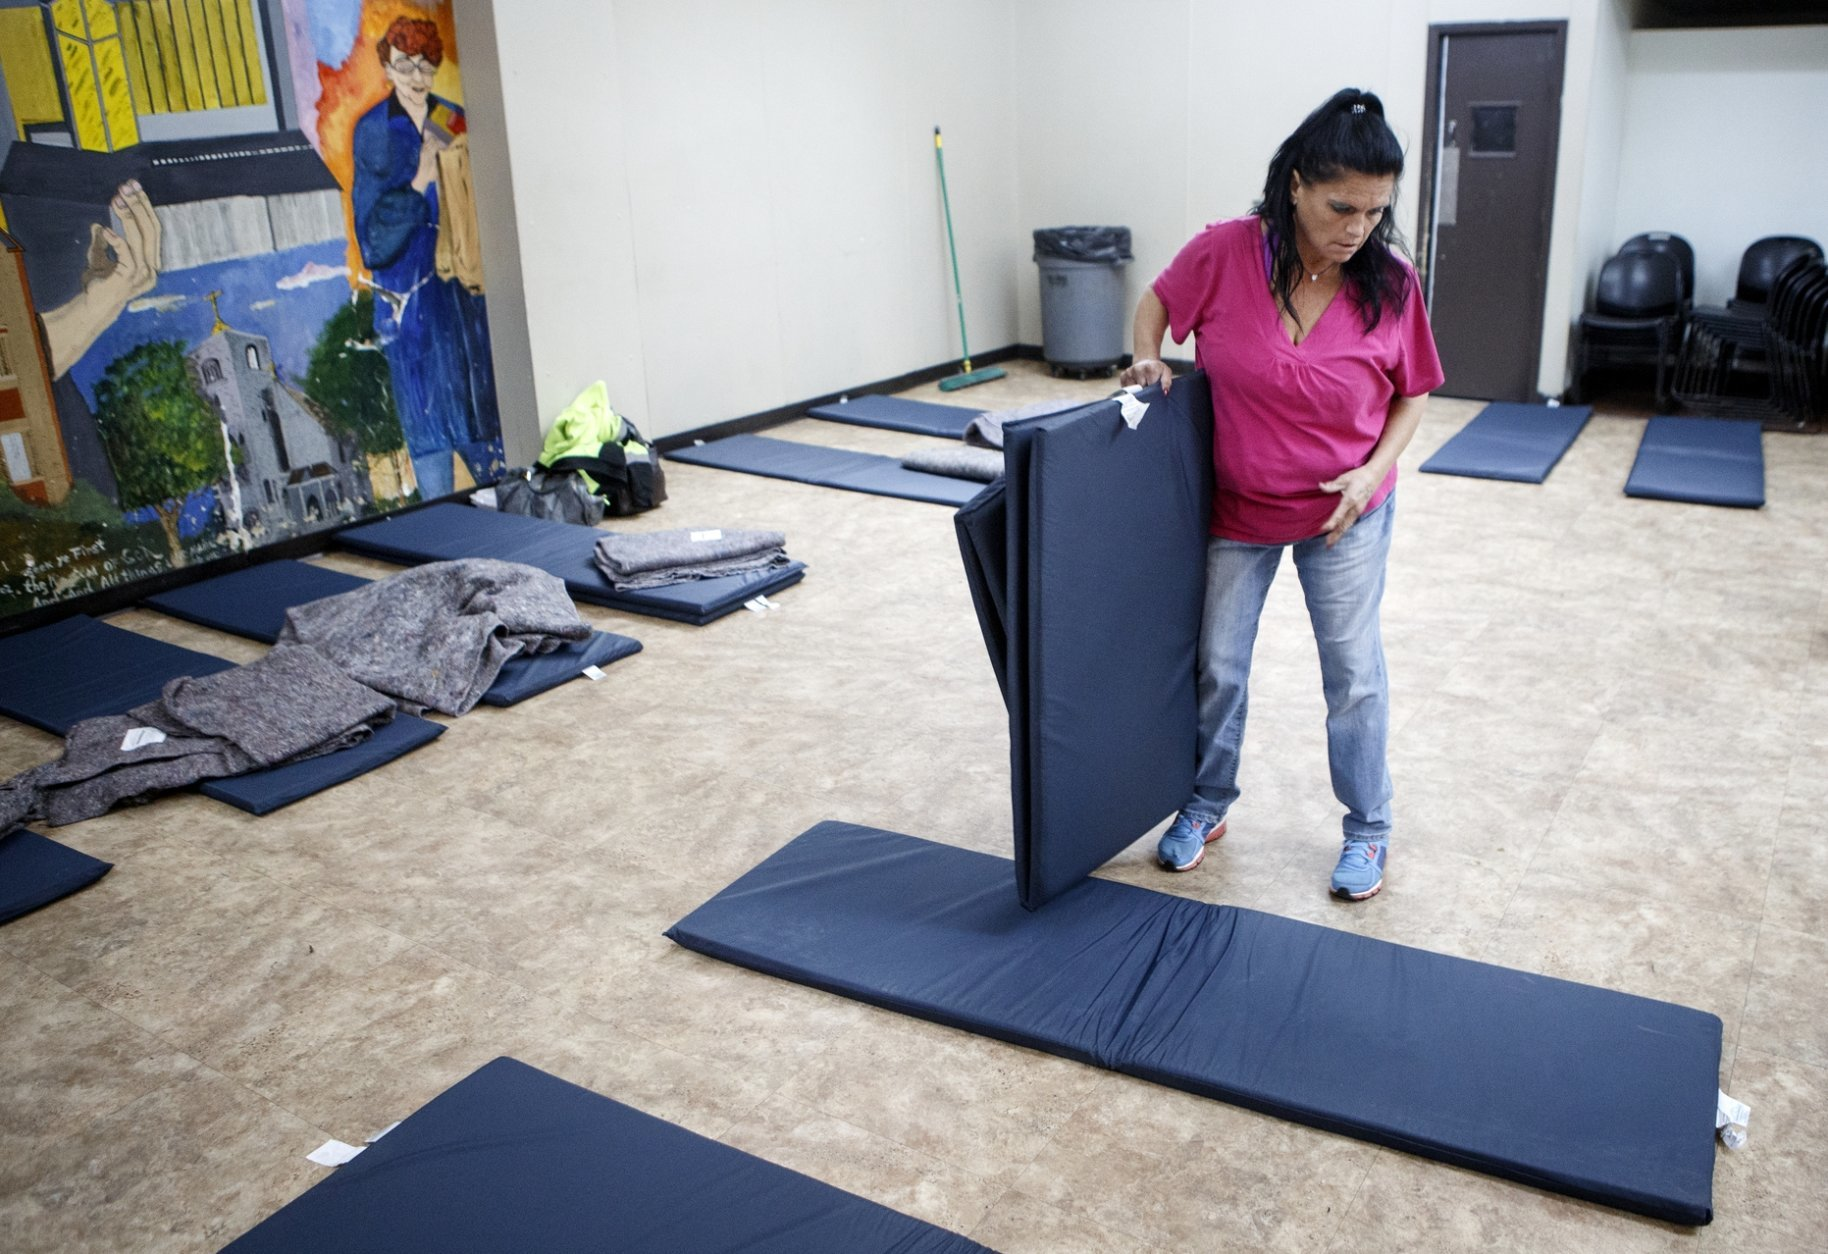 Kim Stewart helps set up mats at the Chattanooga Community Kitchen on Tuesday, Jan. 29, 2019 in Chattanooga, Tenn. The winter shelter at the Chattanooga Community Kitchen opens every night from December through March and houses more than a hundred people on the coldest nights. (C.B. Schmelter/Chattanooga Times Free Press via AP)